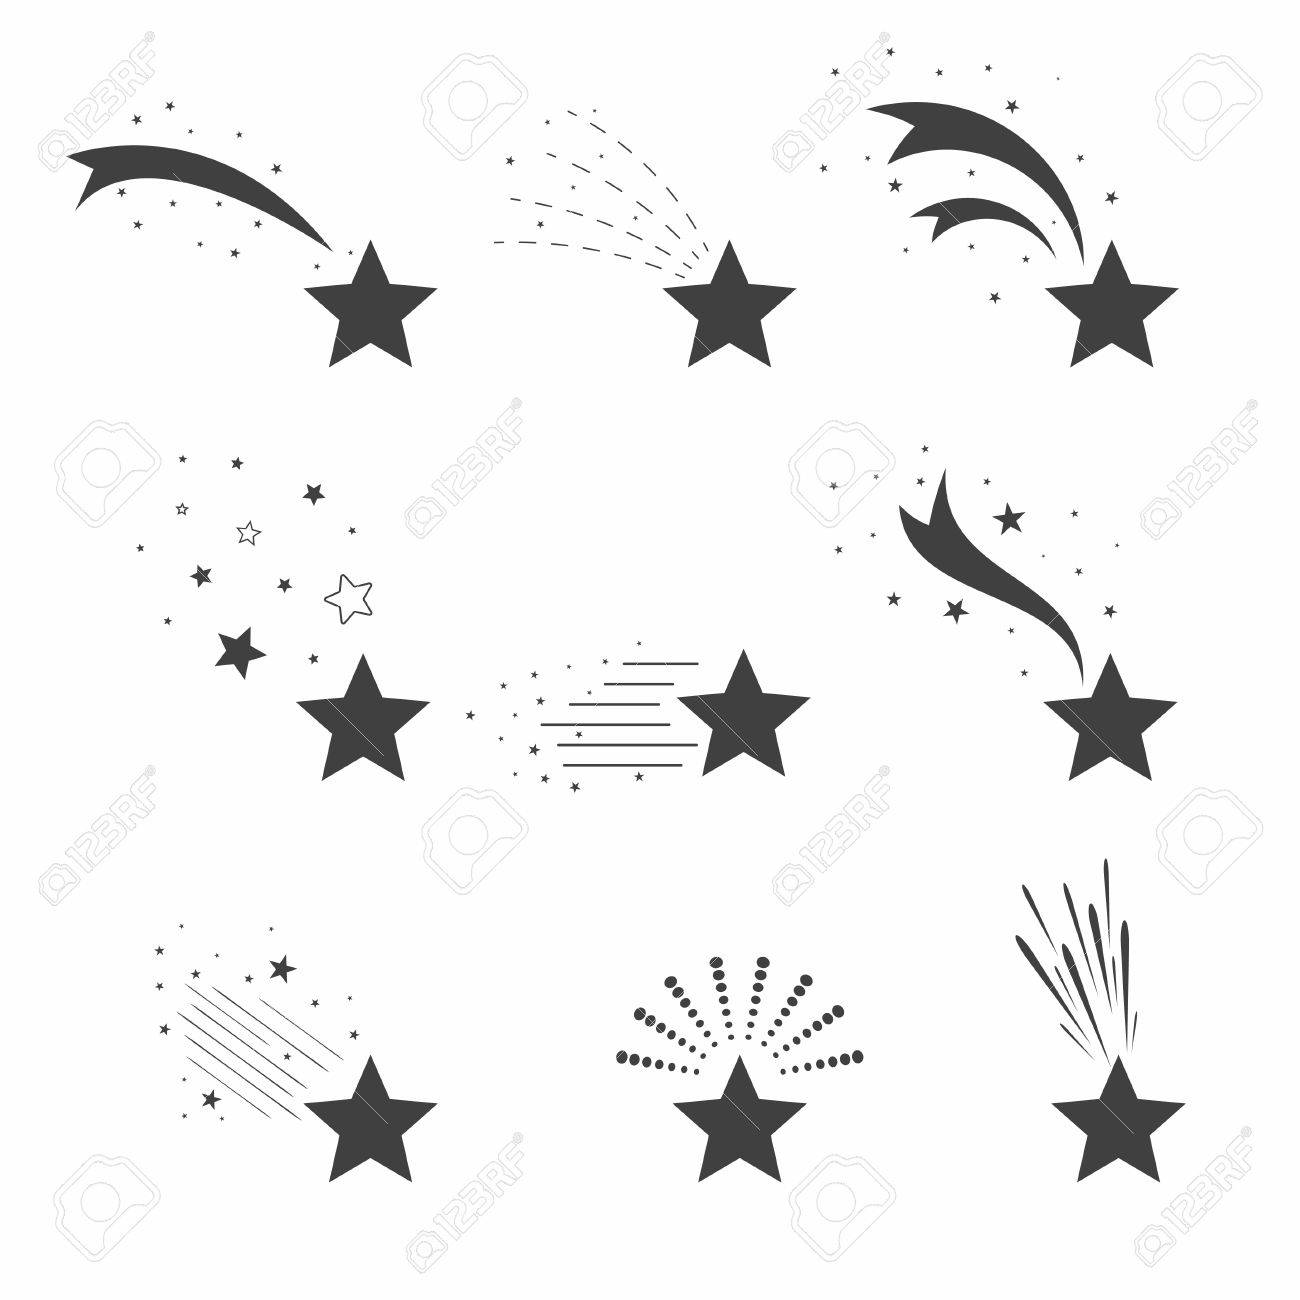 Shooting, falling stars icons. Icons of meteorites and comets. Falling stars with different tails. Vector - 81003451